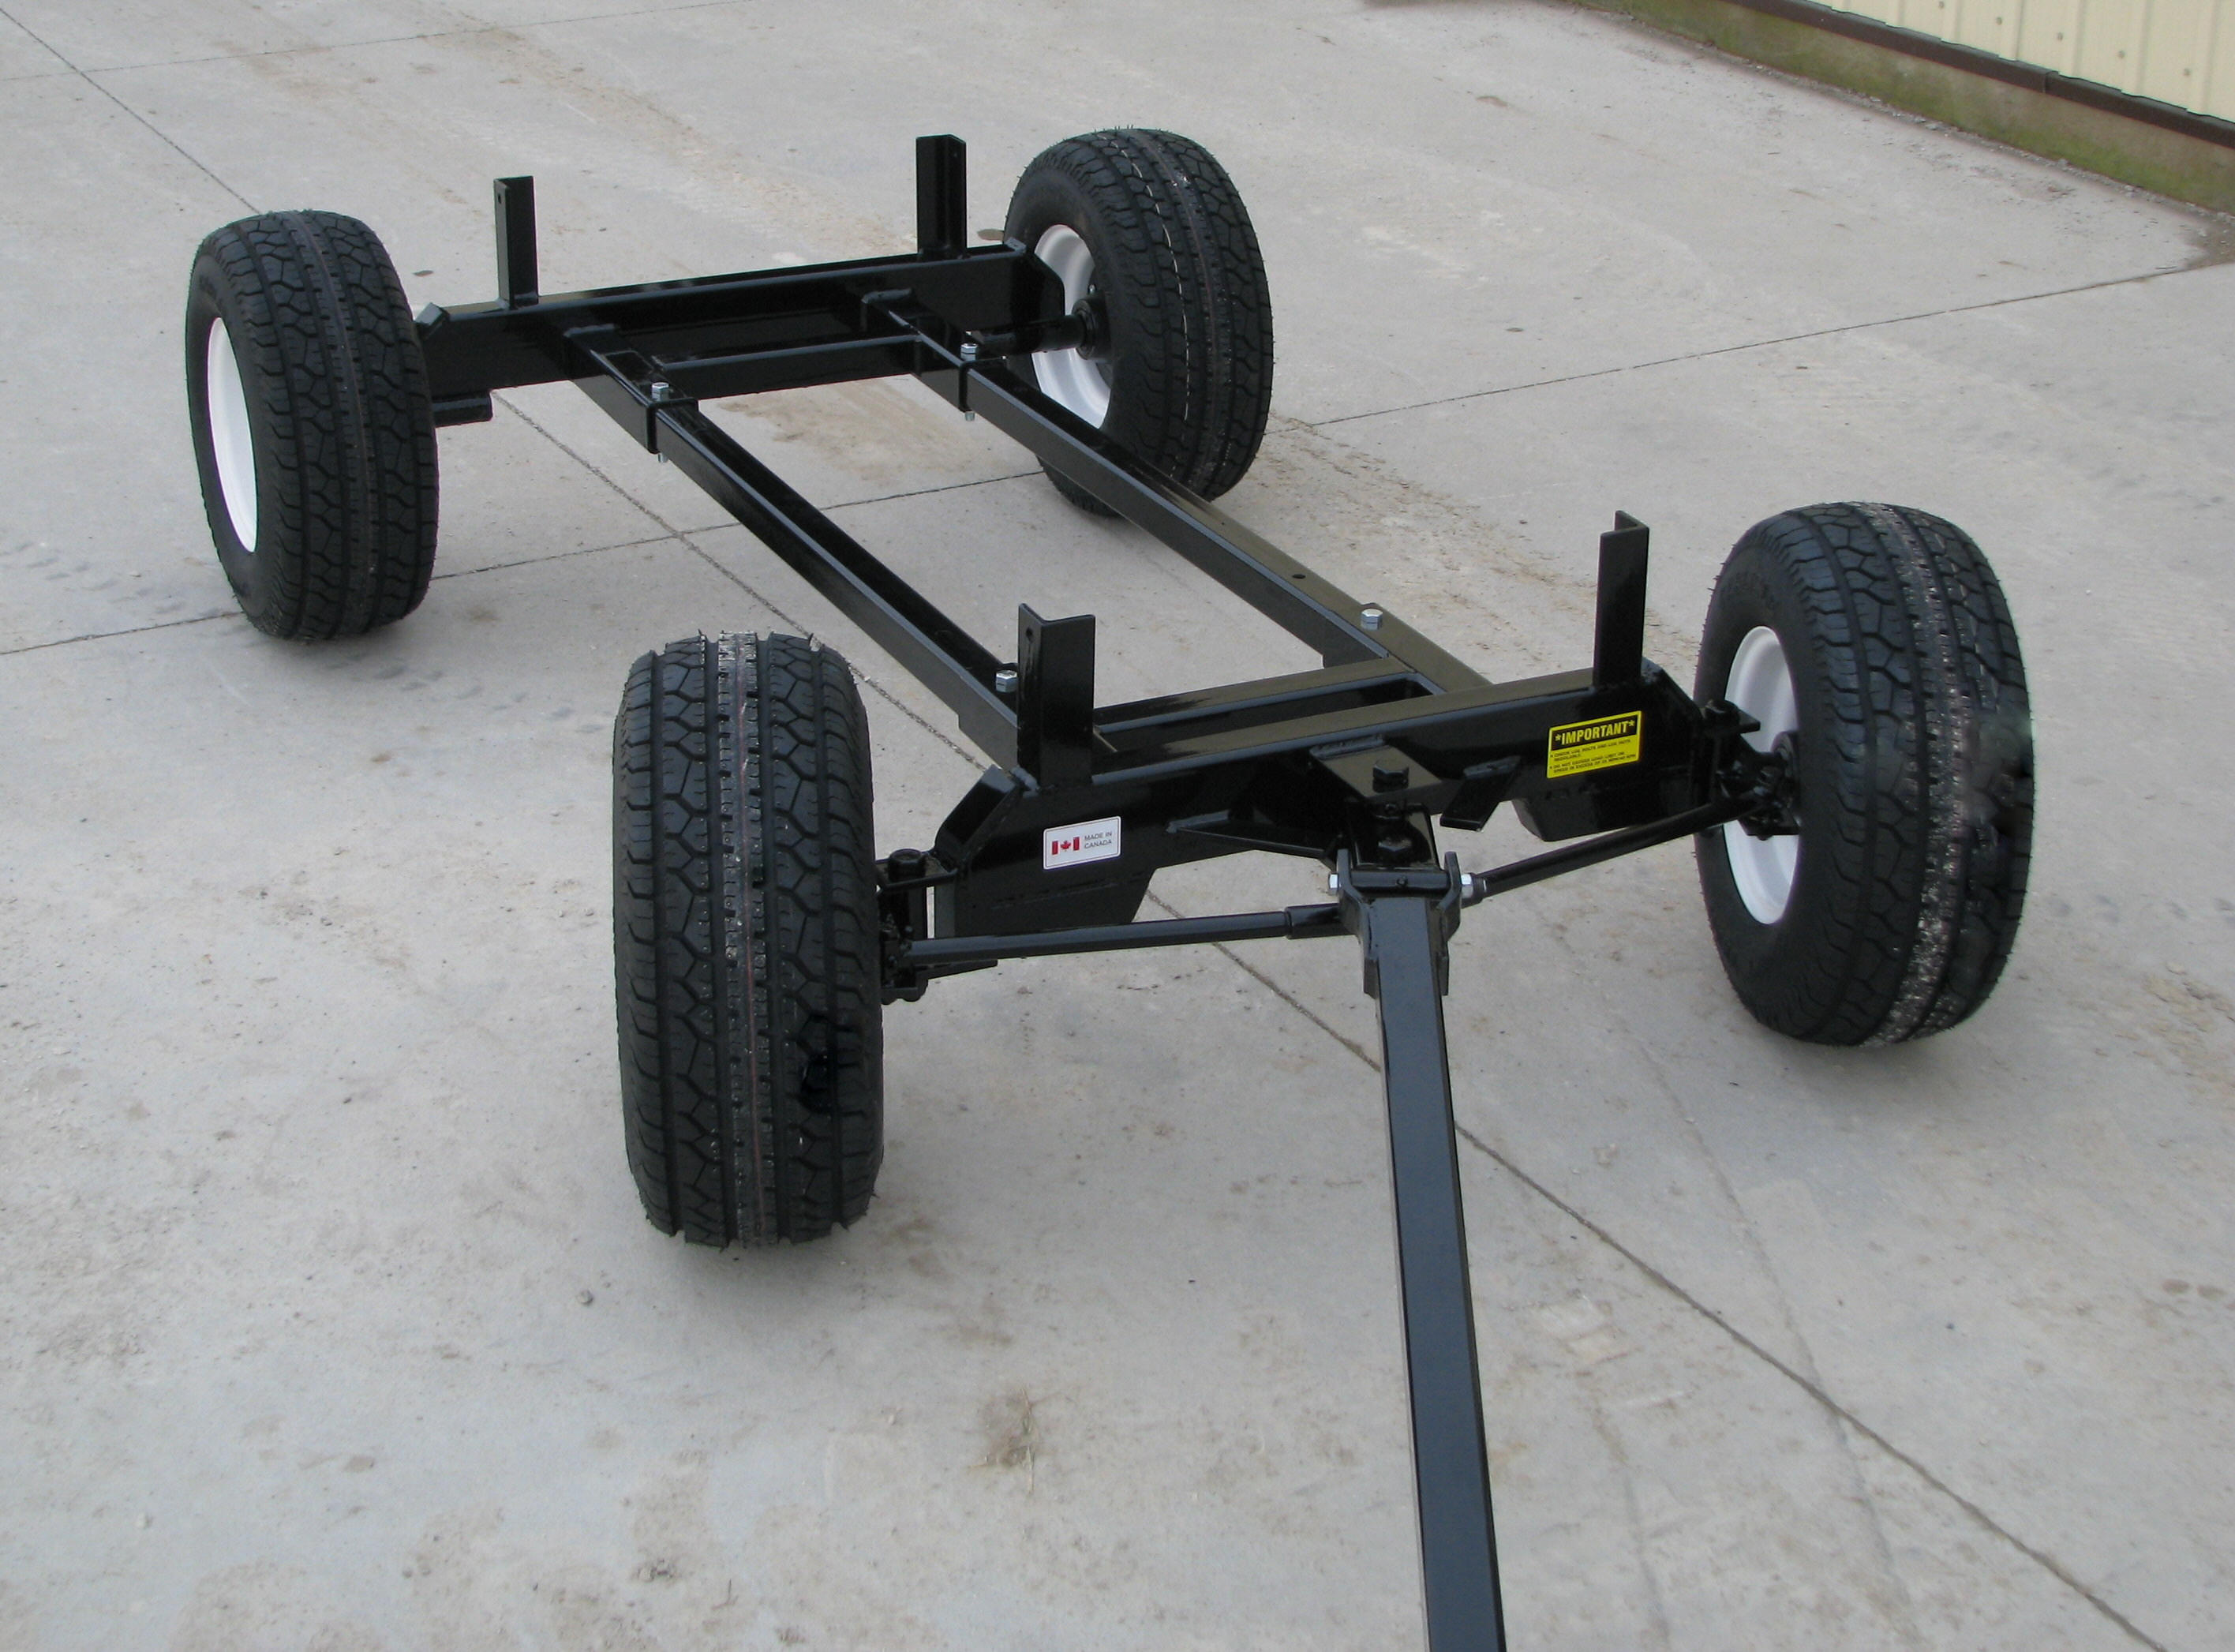 Small Utility Wagons For Tractors : Market ton utility wagons